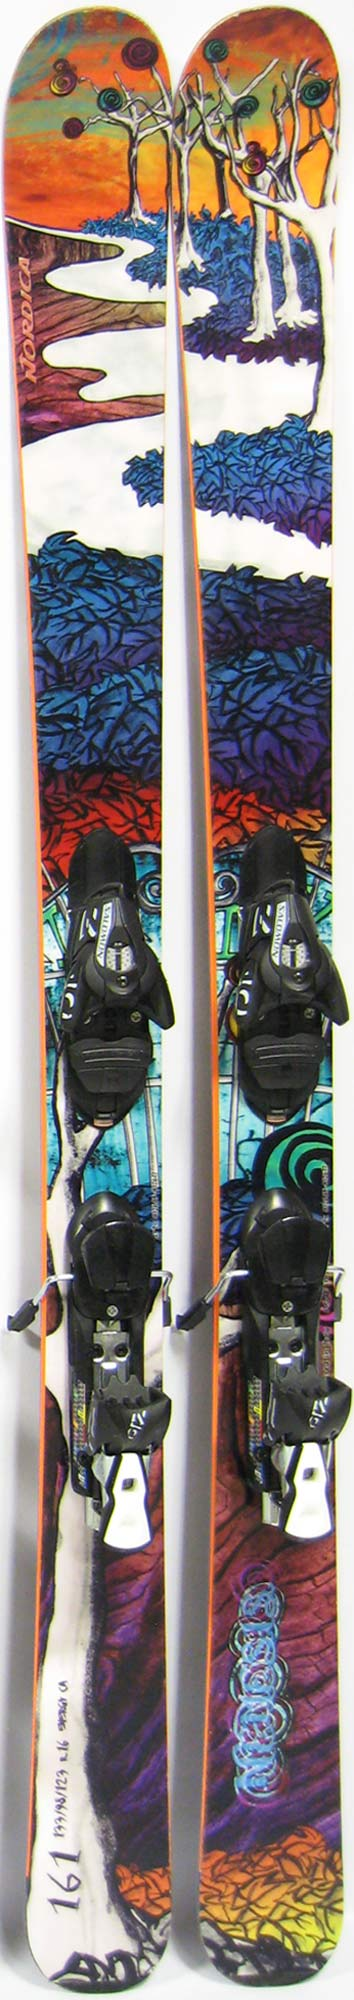 Topsheets of 2012 Nordica Nemesis Skis For Sale